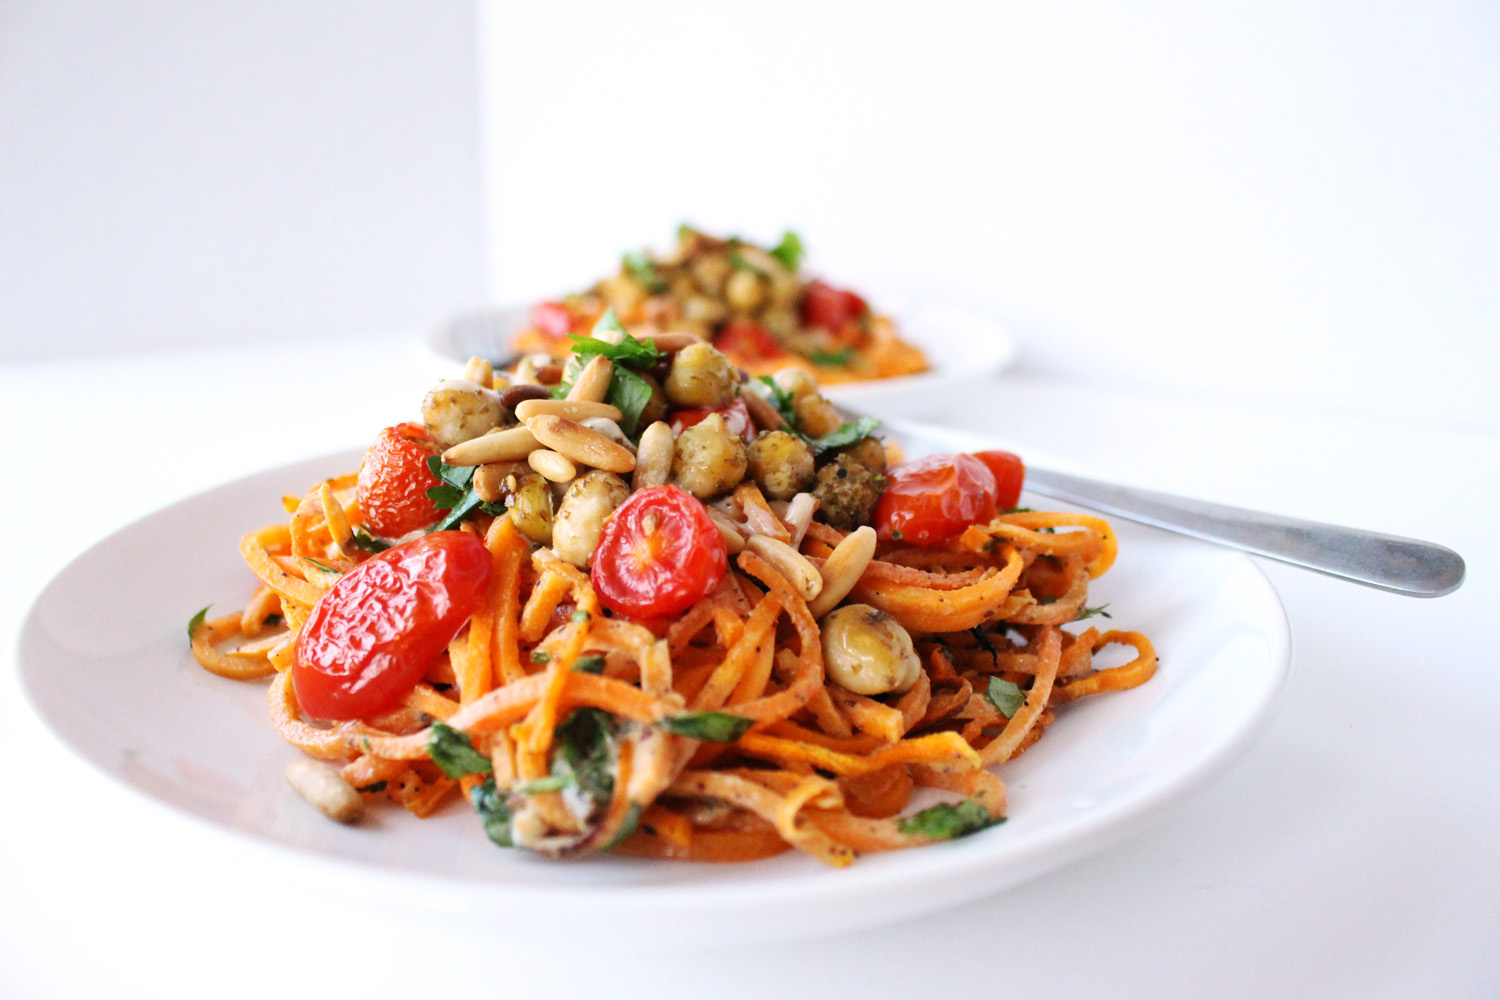 Sweet Potato Noodles with Zaatar Spiced Chickpeas & Tahini (Vegan, GF)